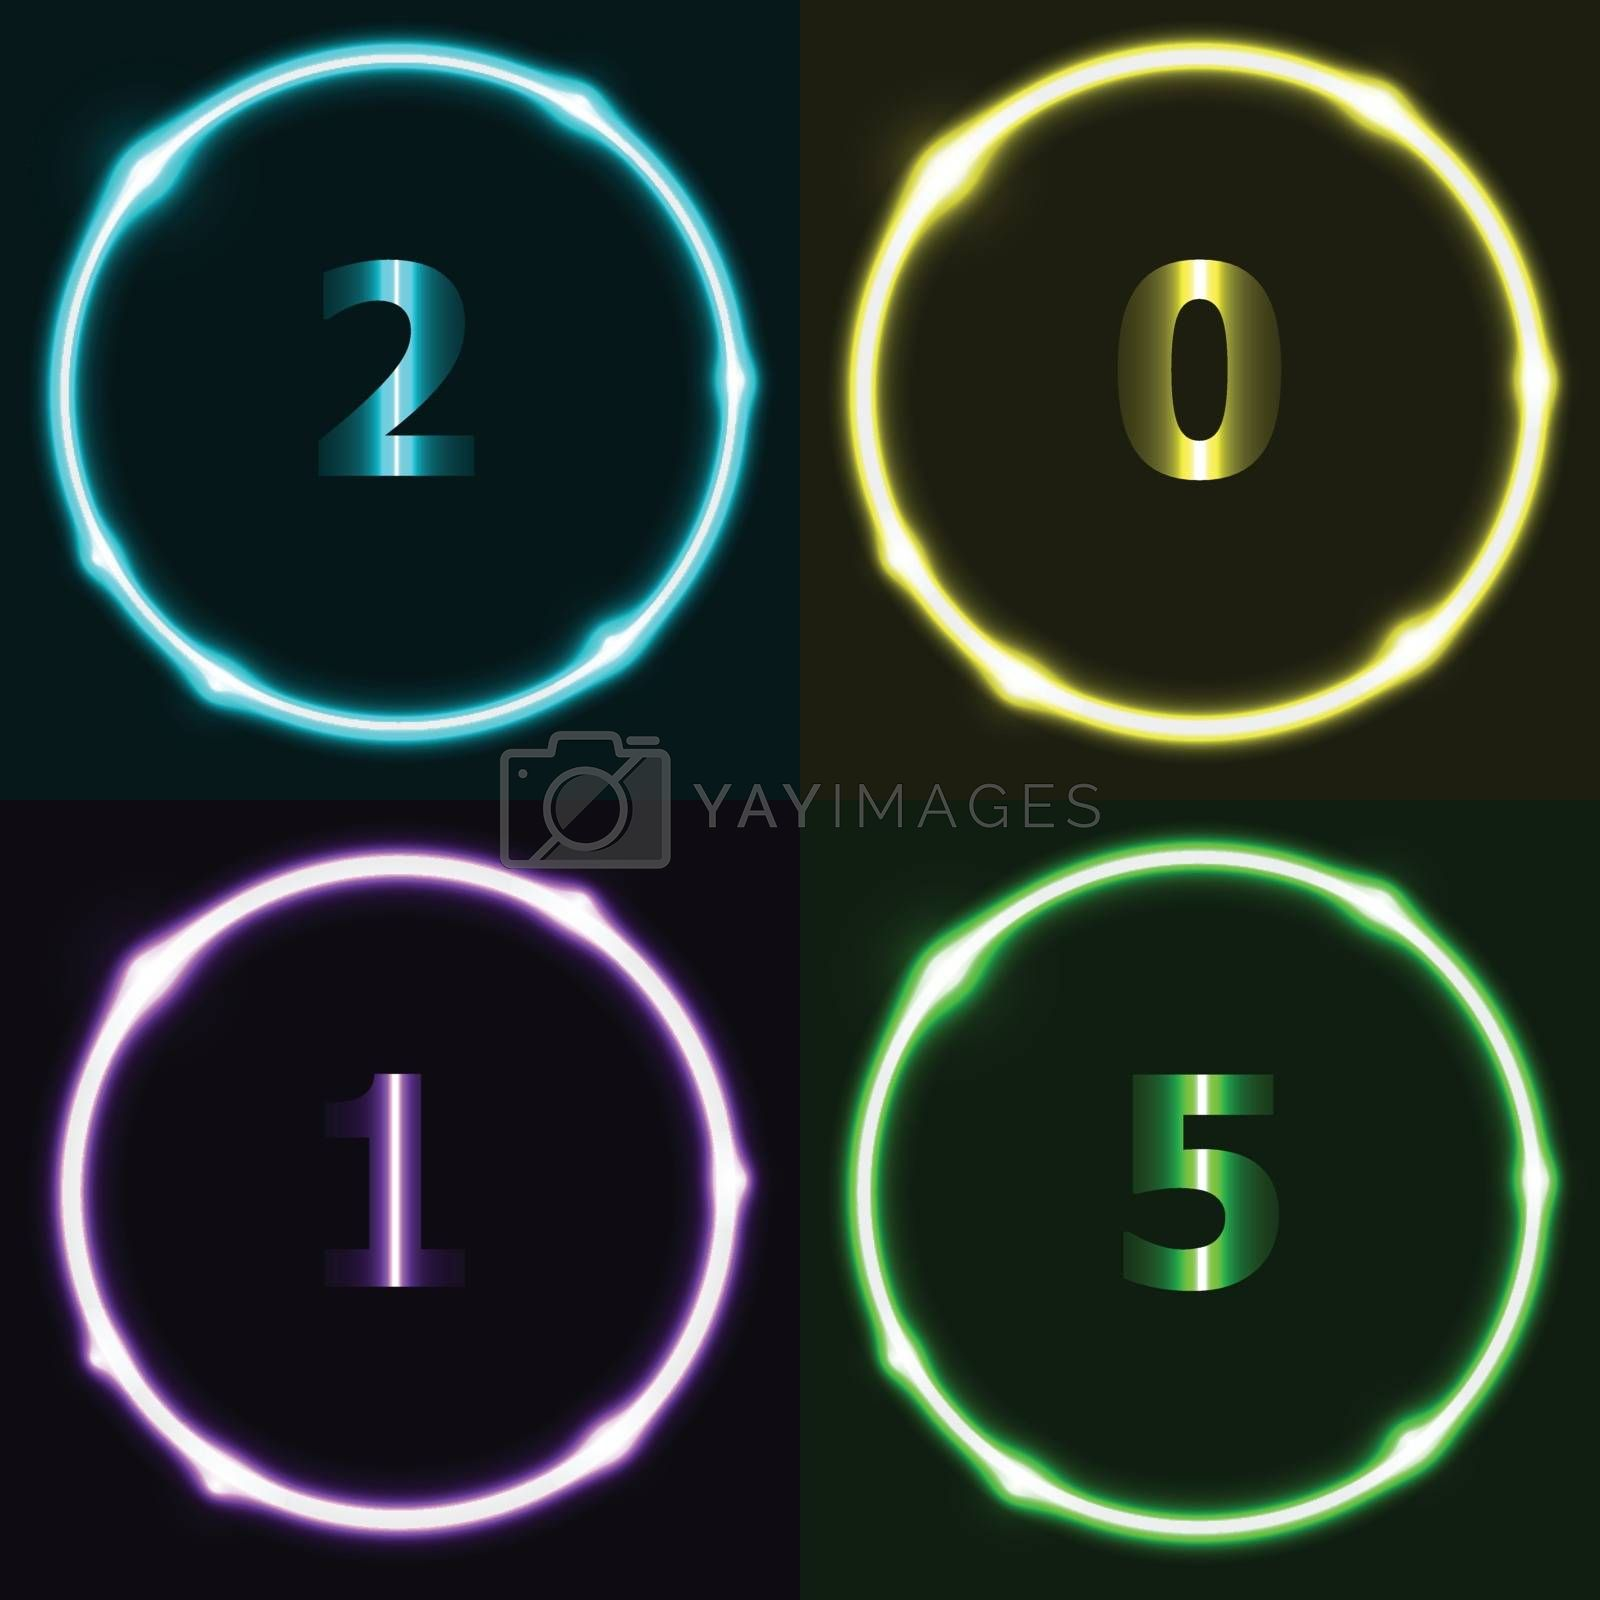 Colorful circle effect with 2015, stock vector